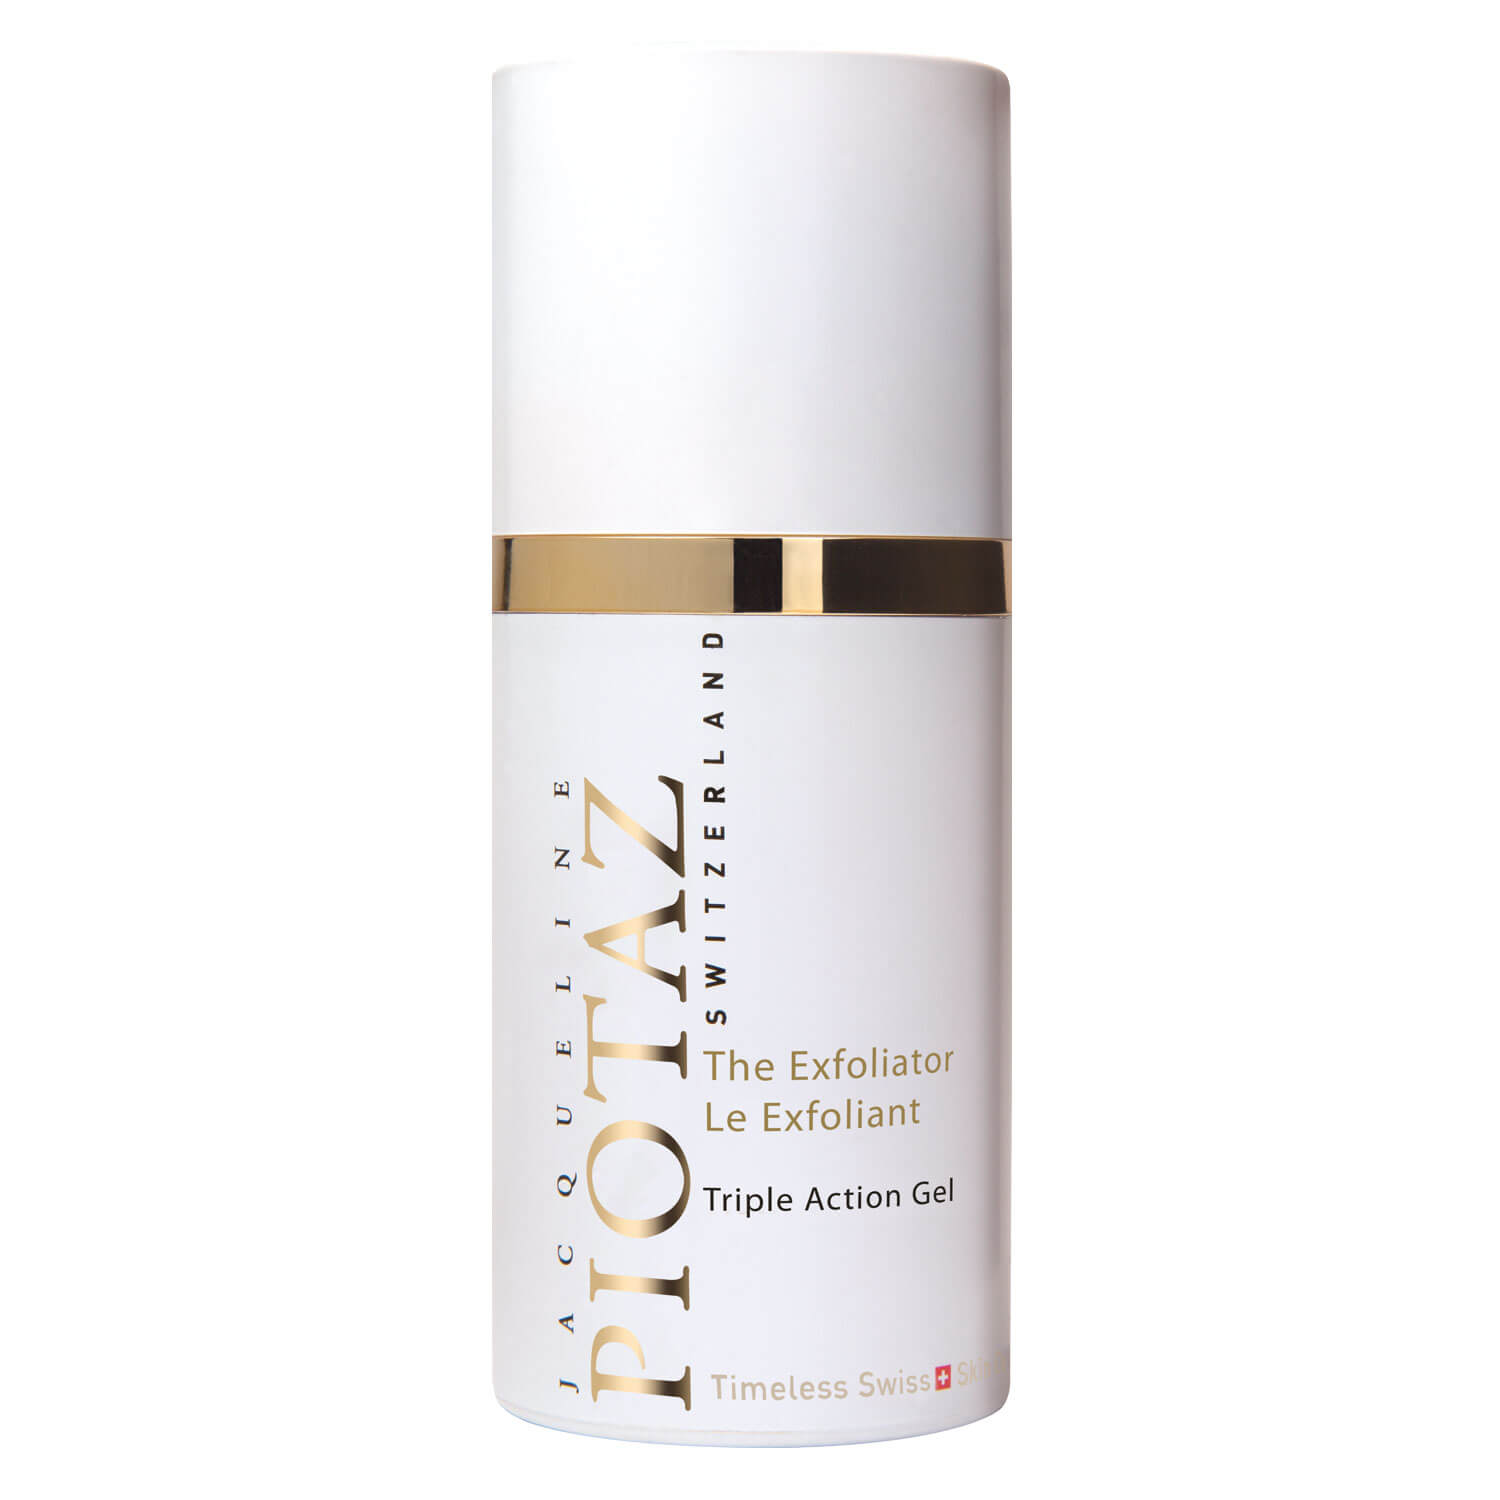 Cellpower Experts - The Purifying Exfoliator